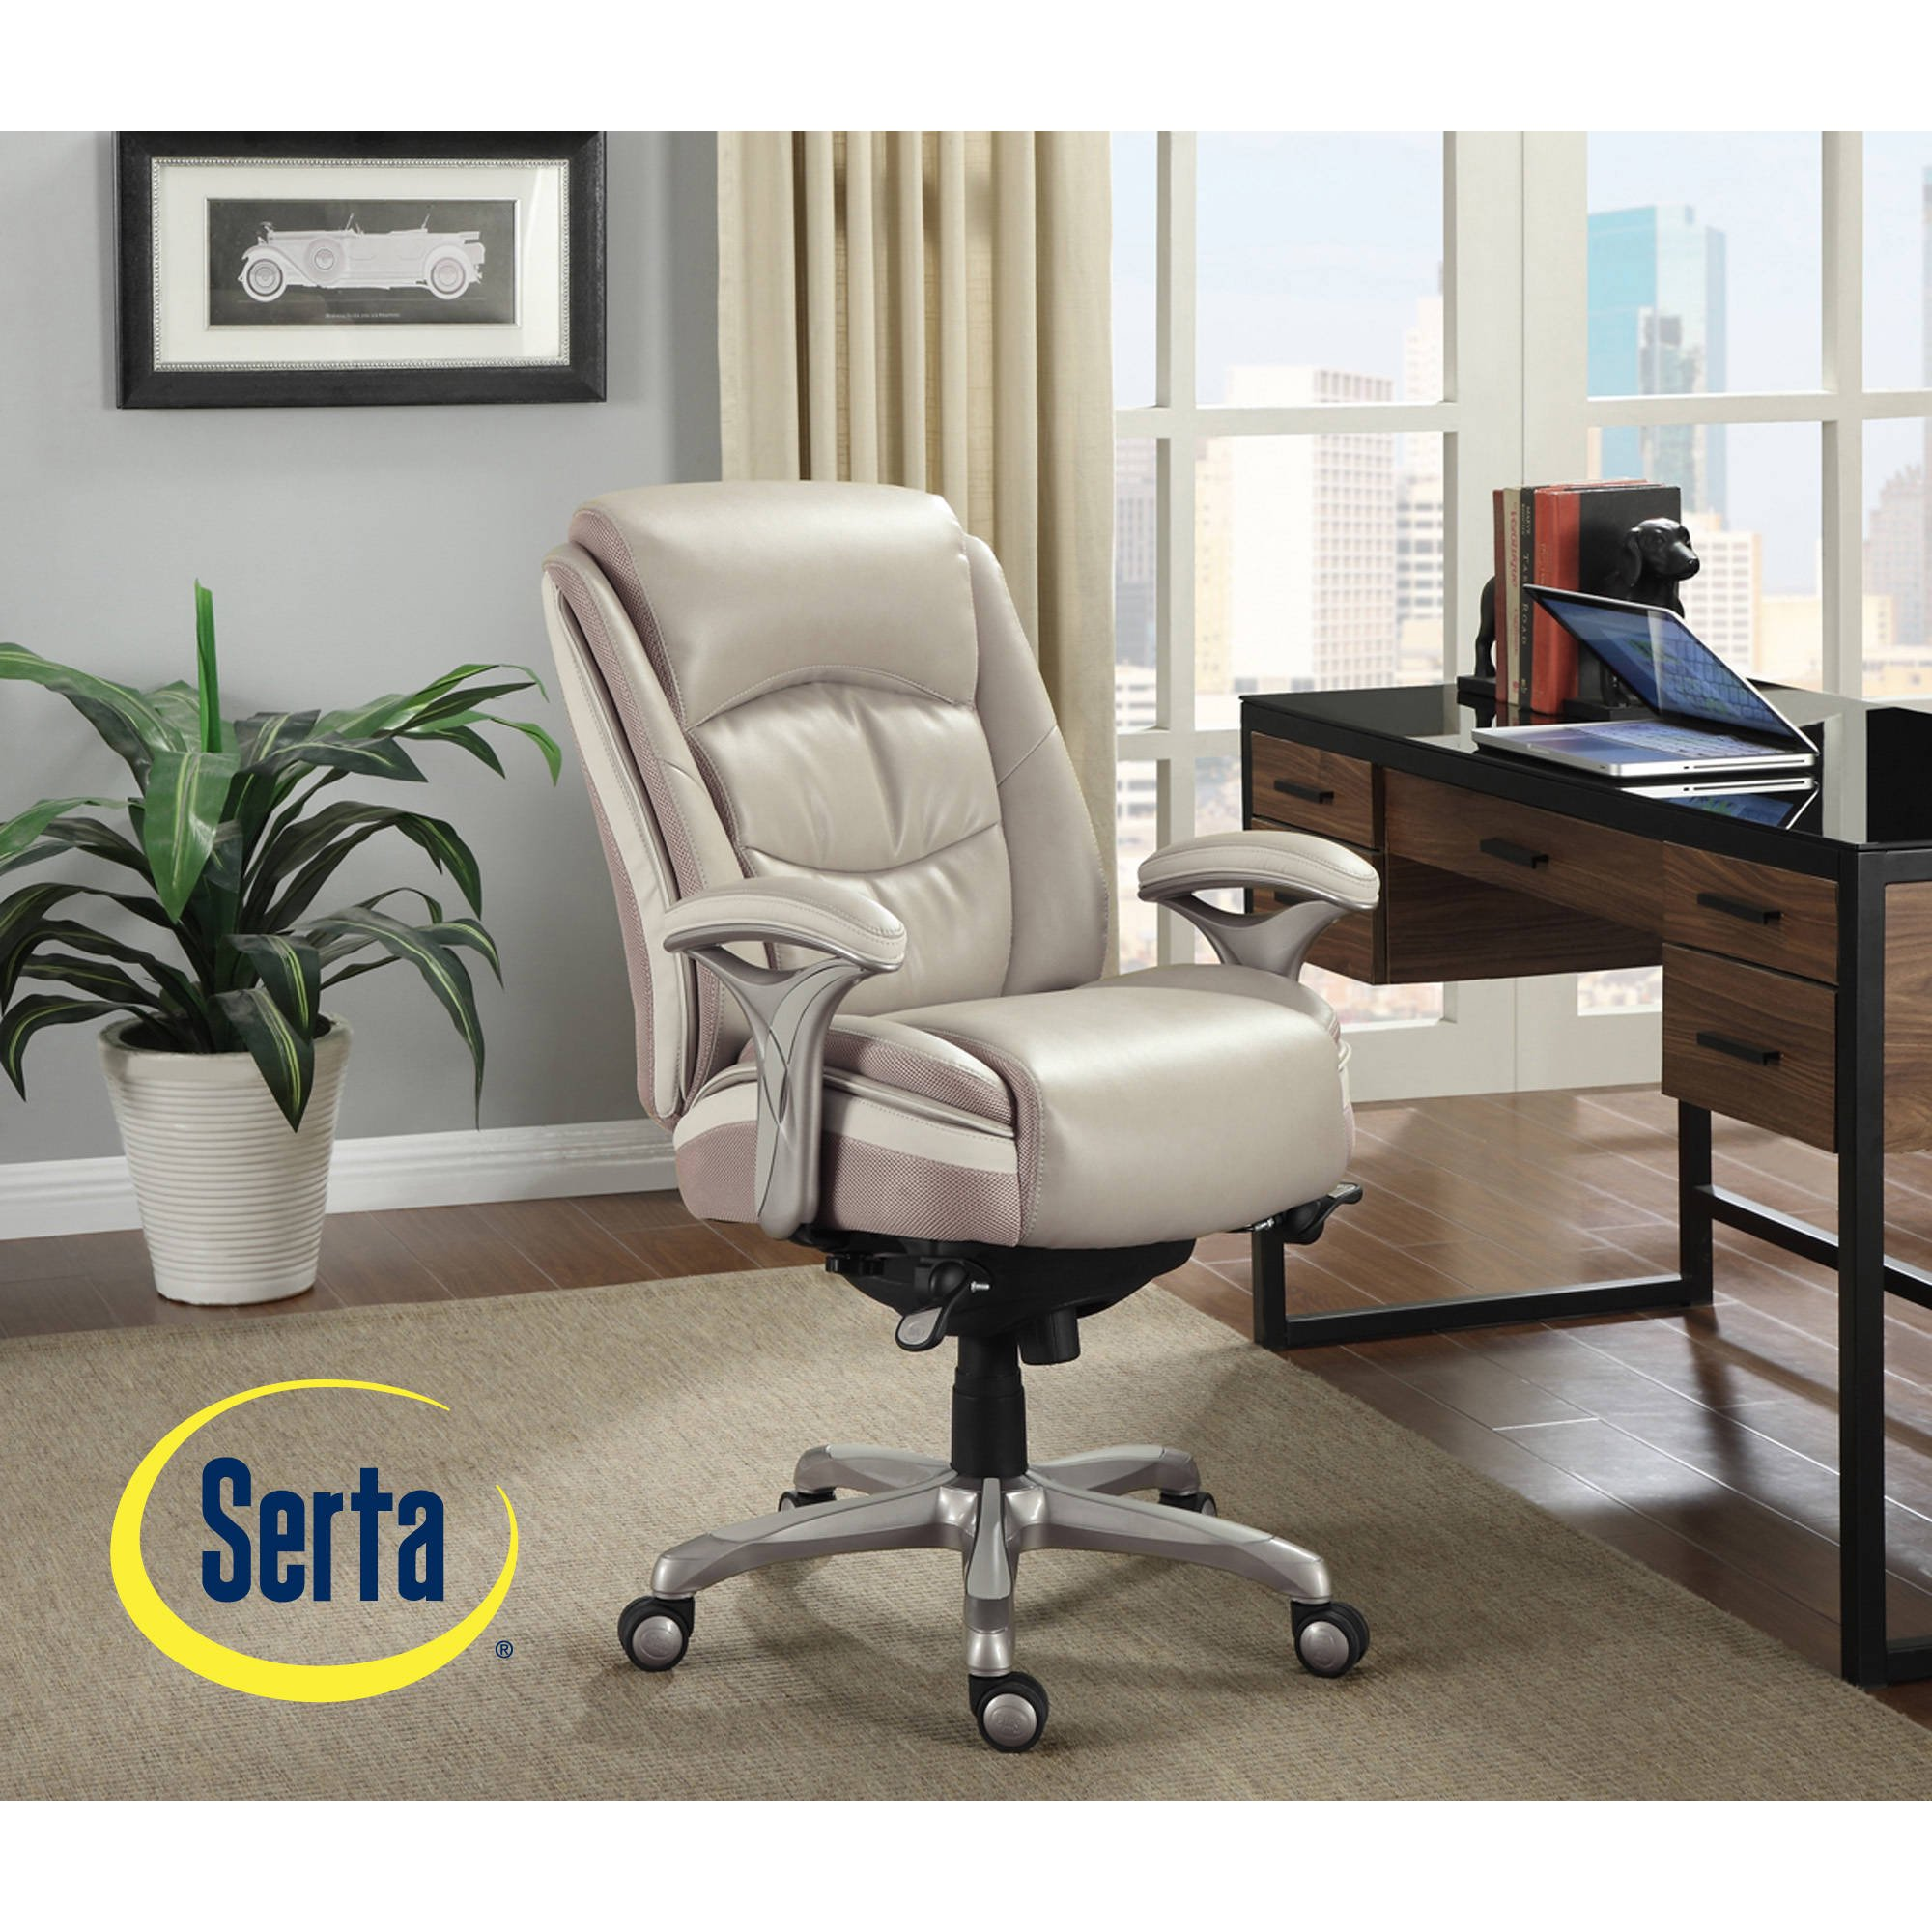 Serta Smart Layers Manager Office Chair, Serenity